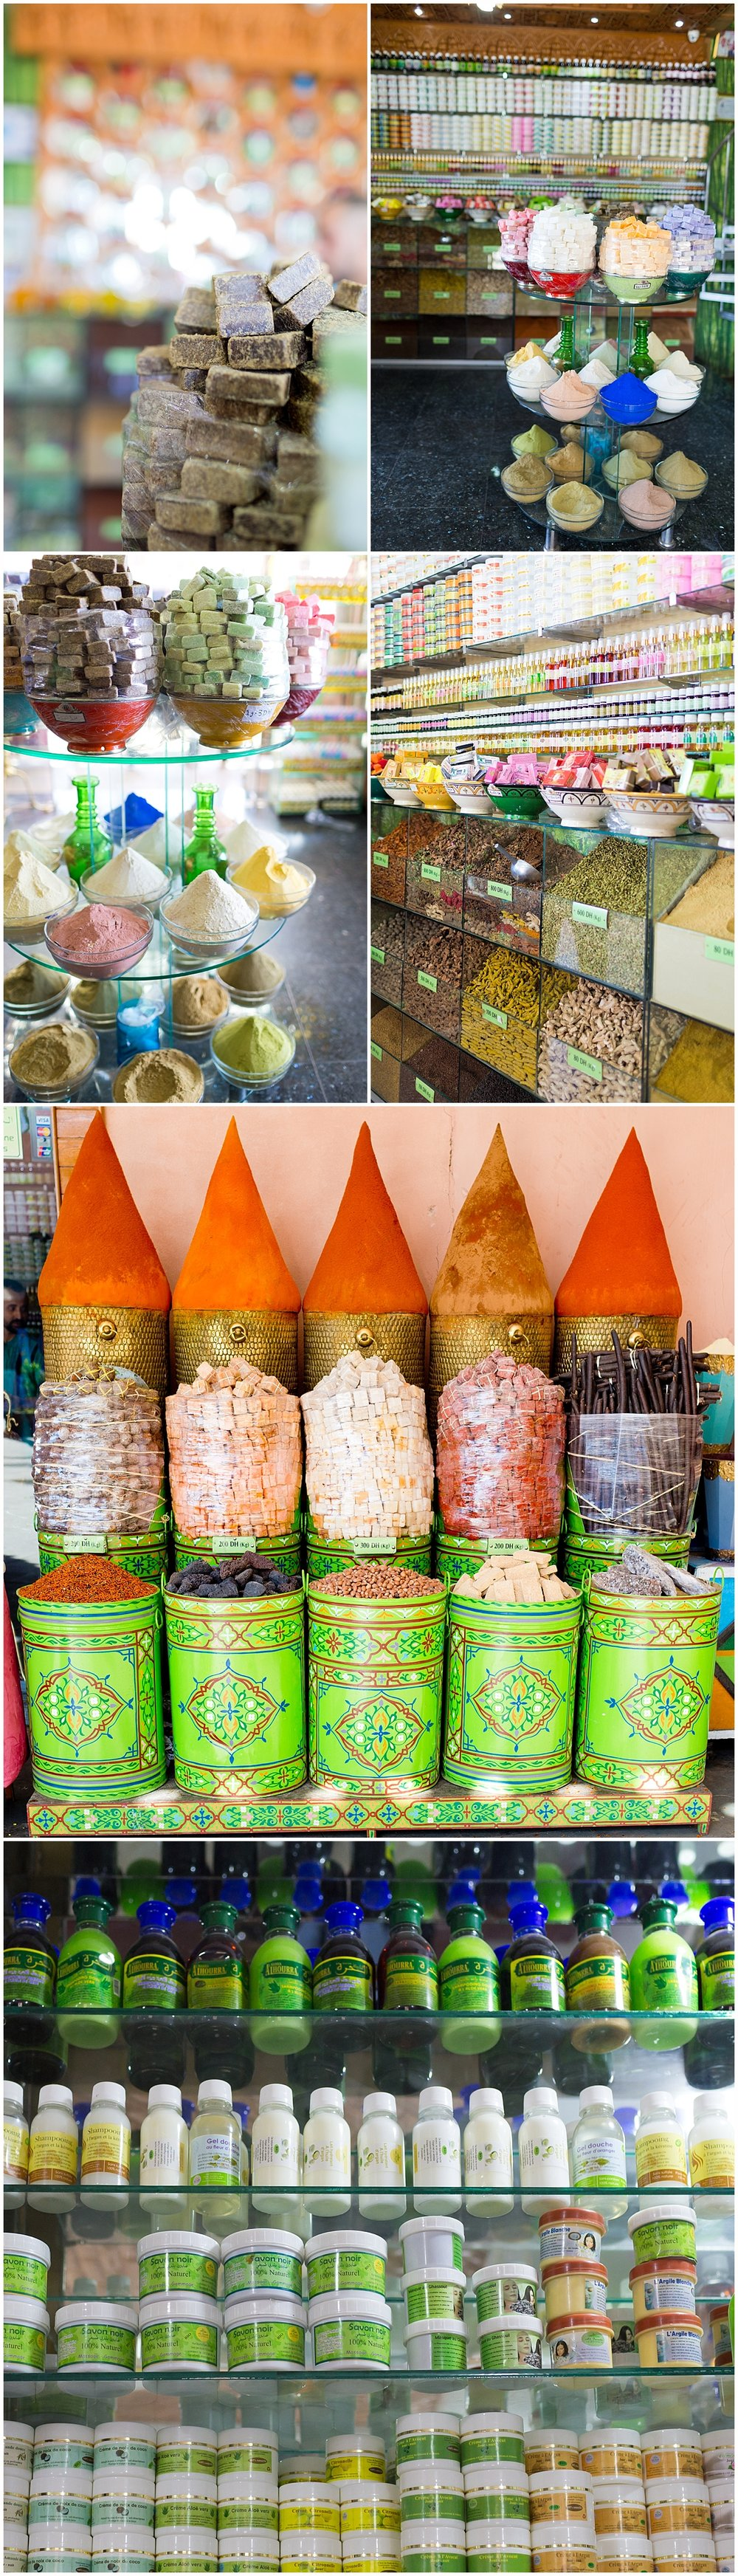 soaps and body care products in Marrakech, Morocco